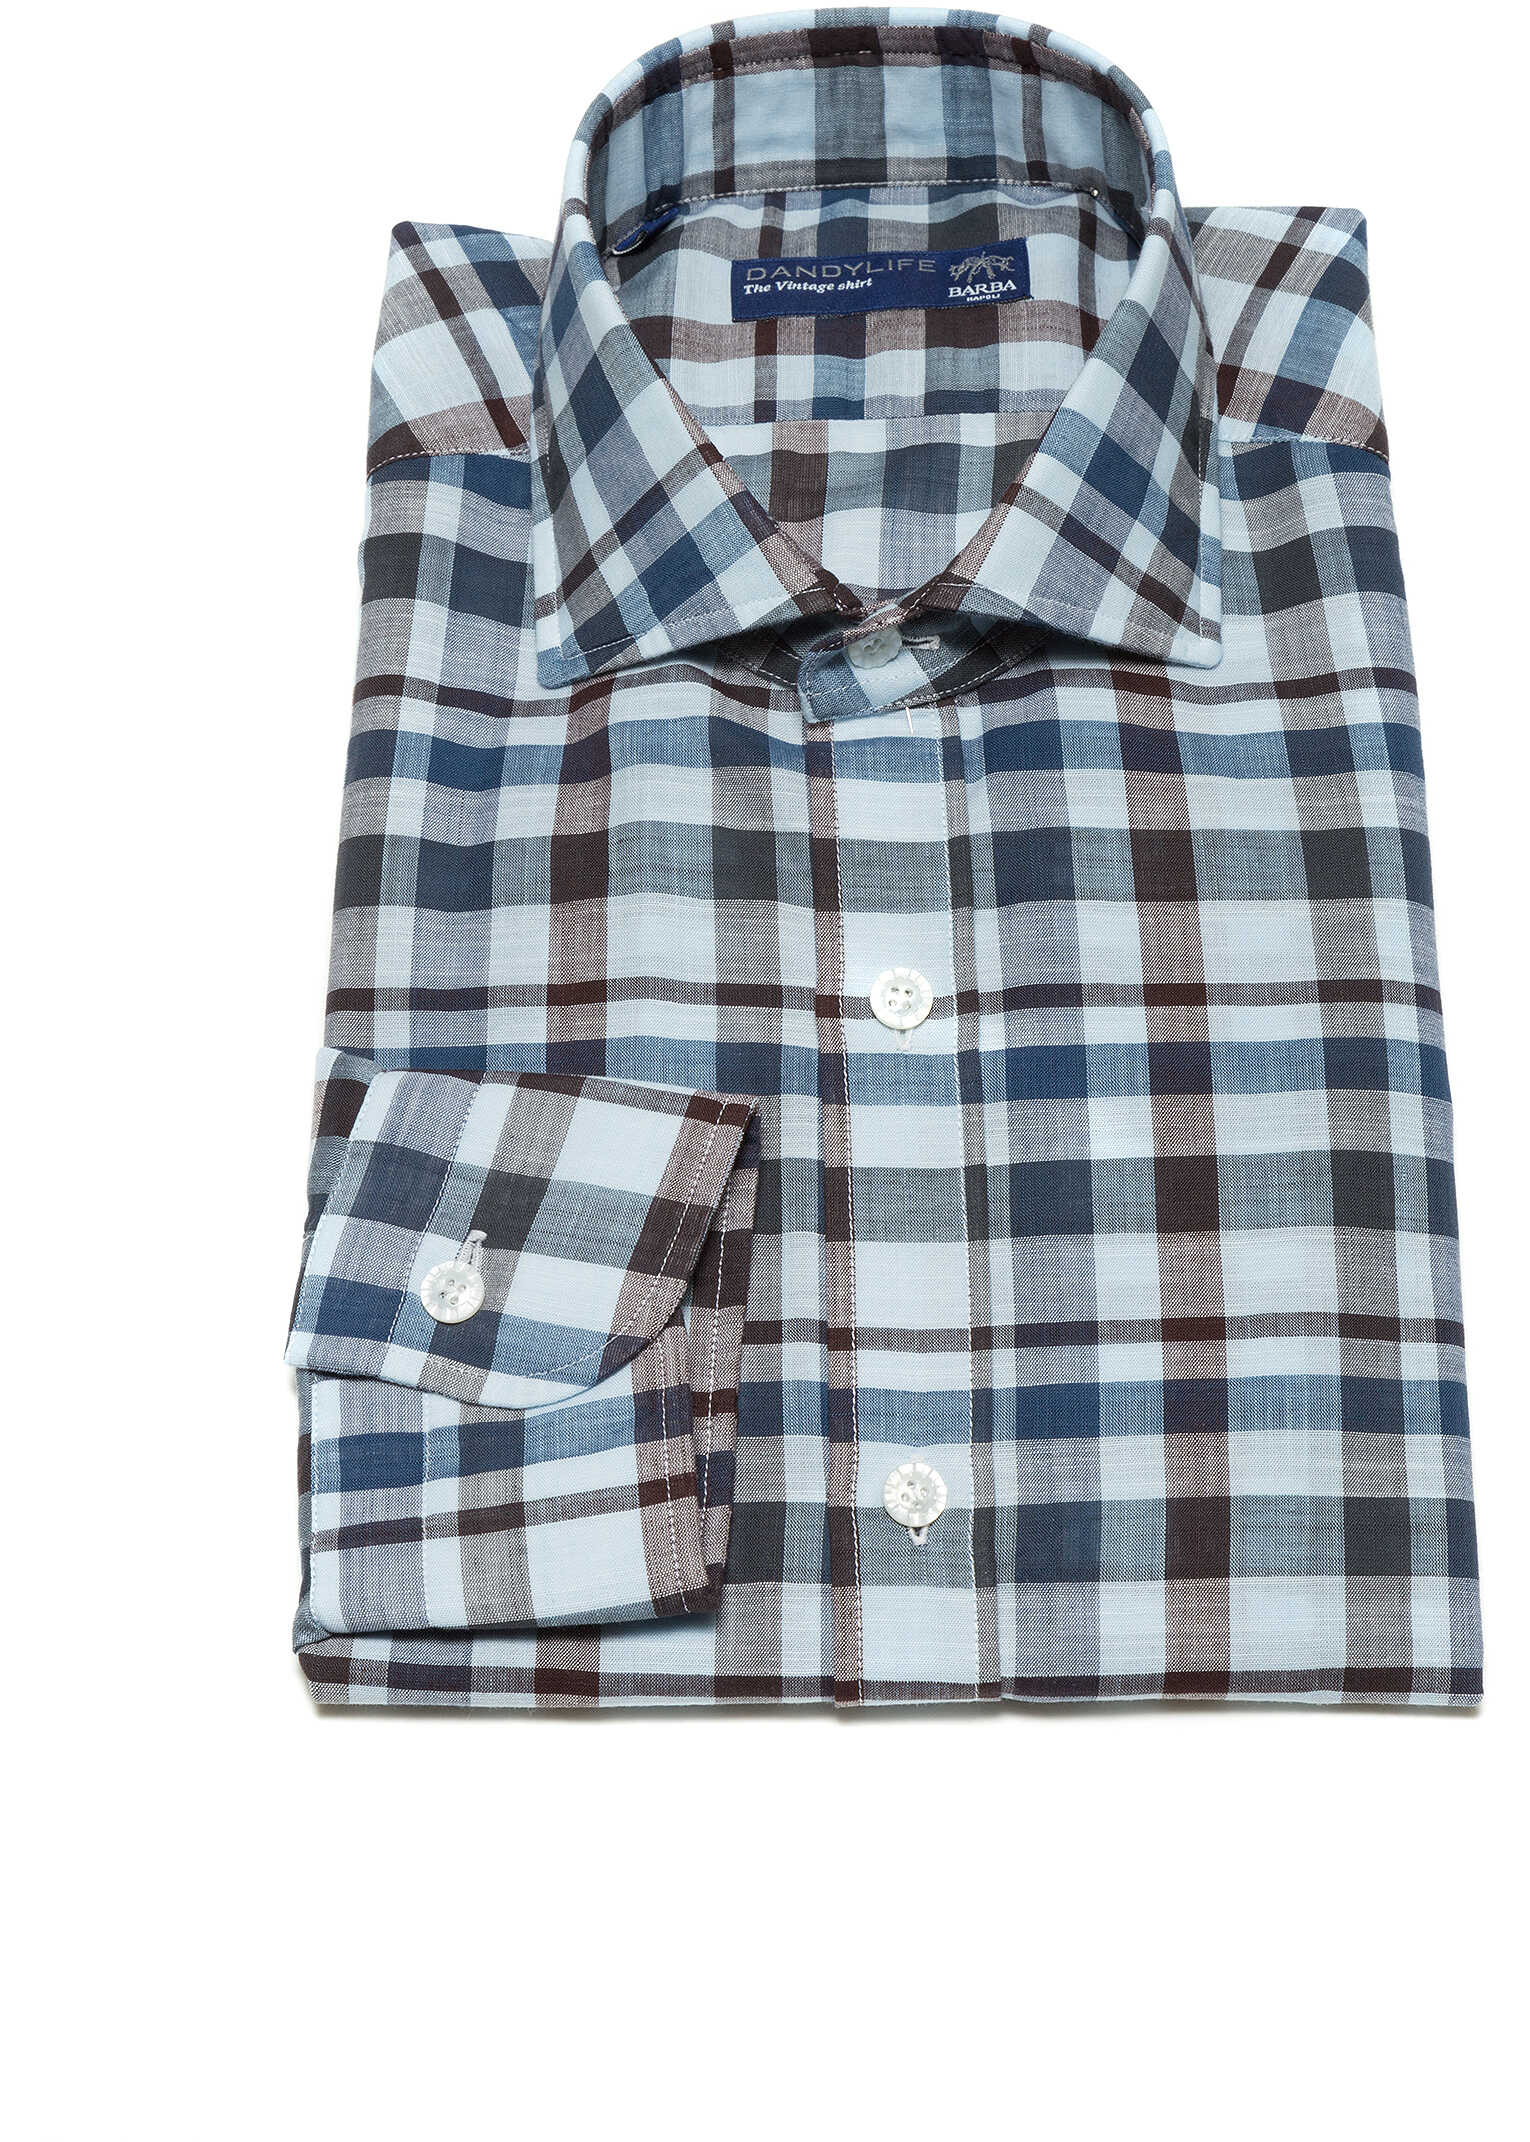 Barba Napoli Dandy Life Shirt* Quadri